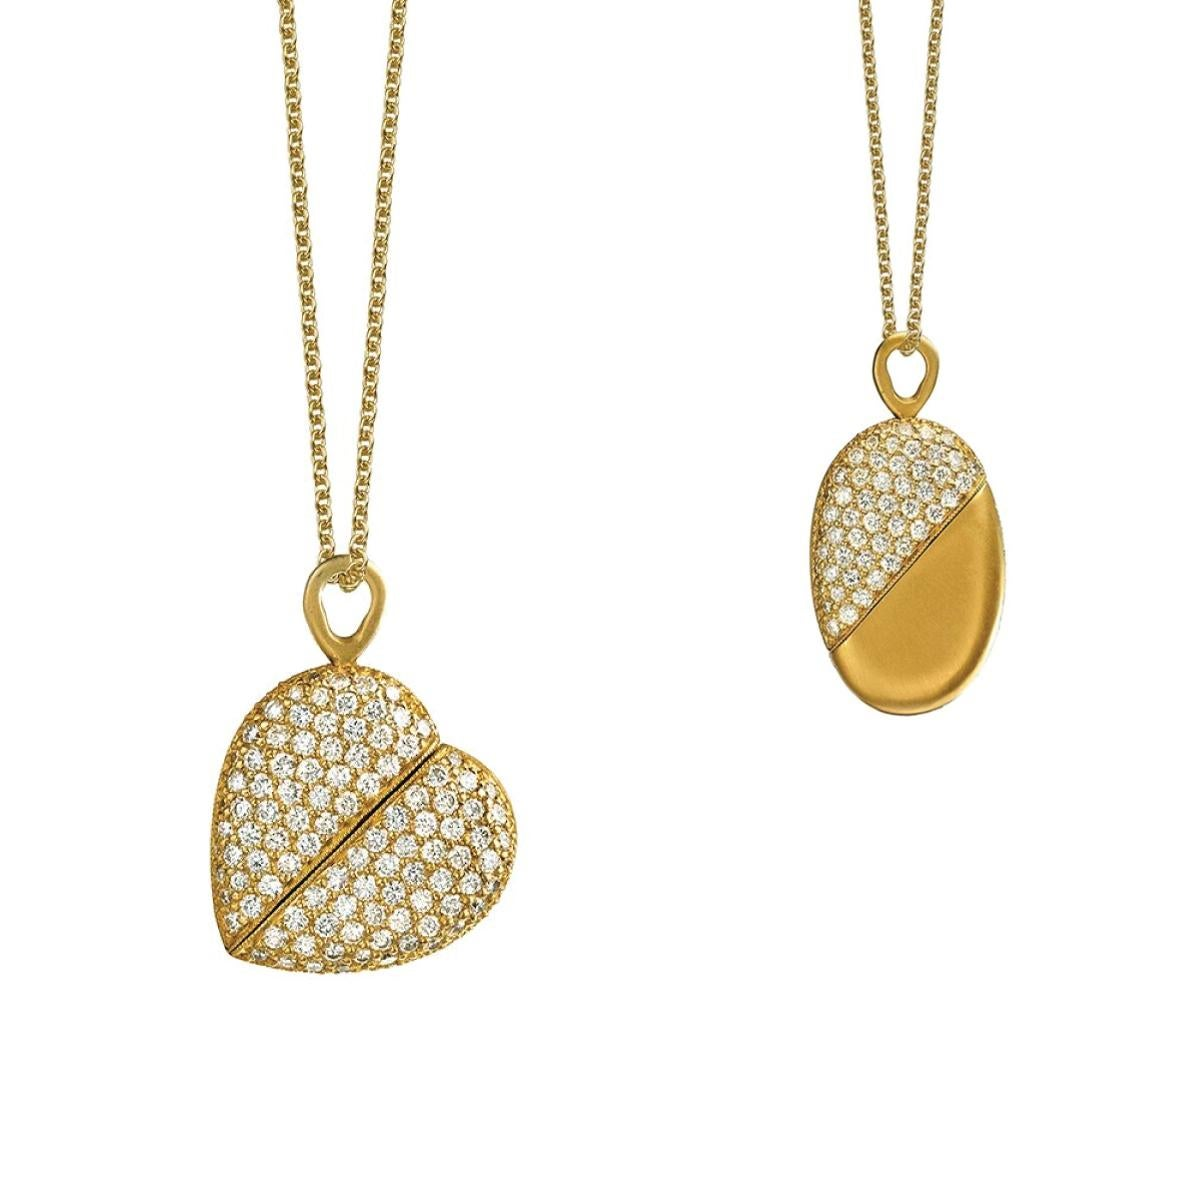 Wendy Brandes 2-in-1 Yellow Gold and Diamond Heart Necklace